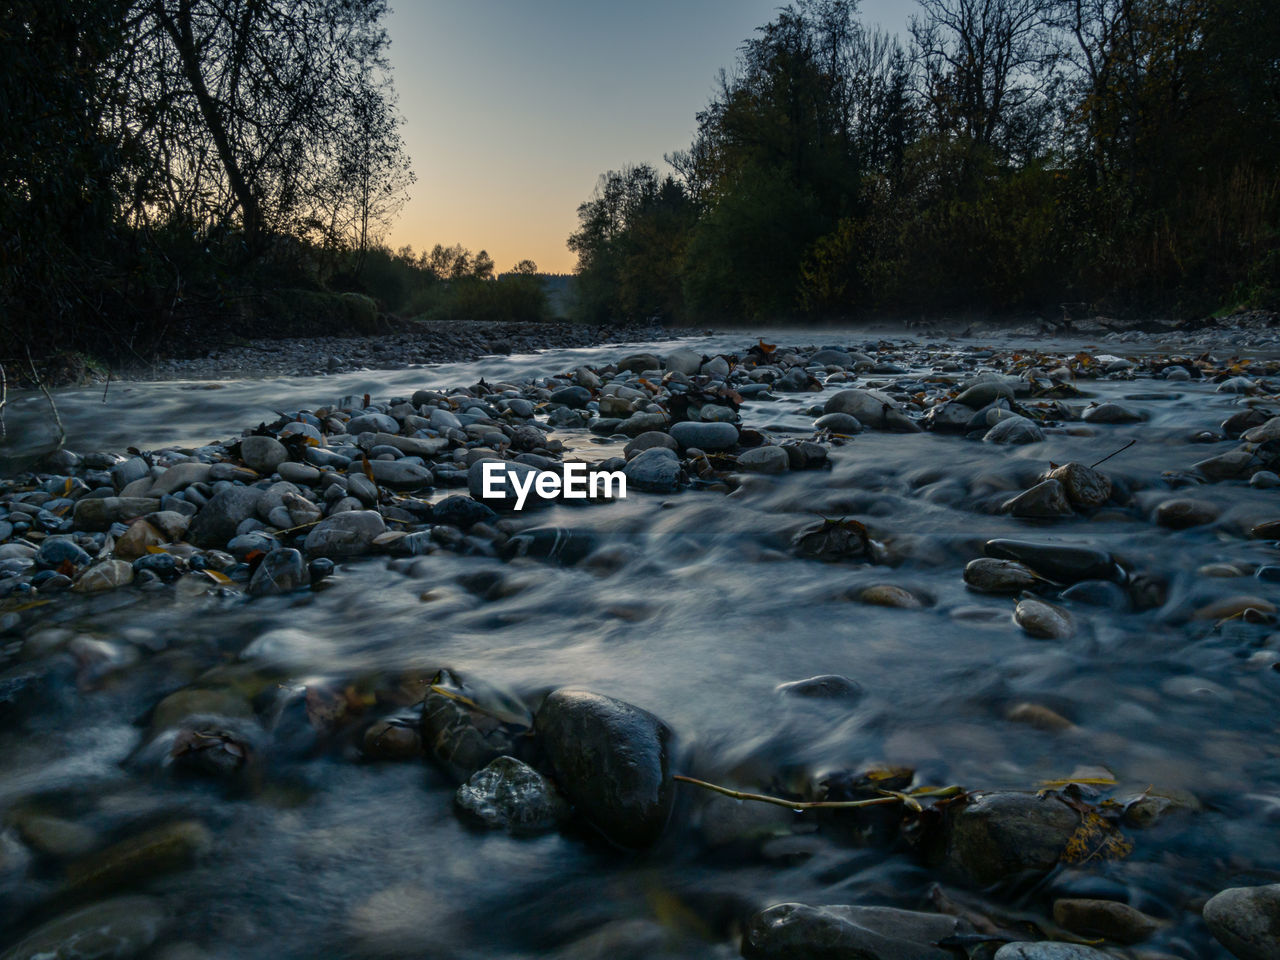 tree, water, rock, solid, no people, nature, plant, river, scenics - nature, non-urban scene, sky, rock - object, tranquility, beauty in nature, stone - object, tranquil scene, land, sunset, flowing water, surface level, outdoors, pebble, flowing, stream - flowing water